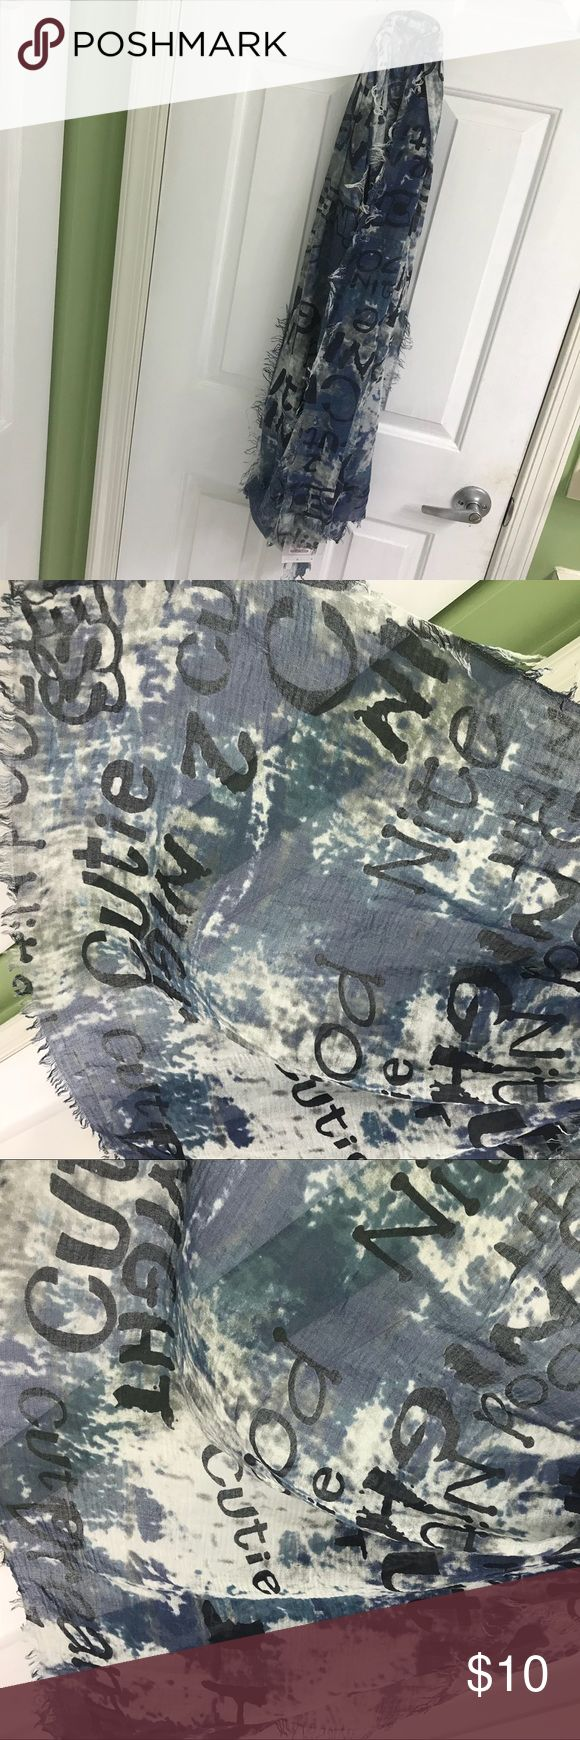 "Blue and white scarf with different words on it Blue and white scarf with some fringe material. Received as a gift from Europe. The scarf has words all over and says things like ""cutie"" ""dream"" and ""nite"" NWT Accessories Scarves & Wraps"